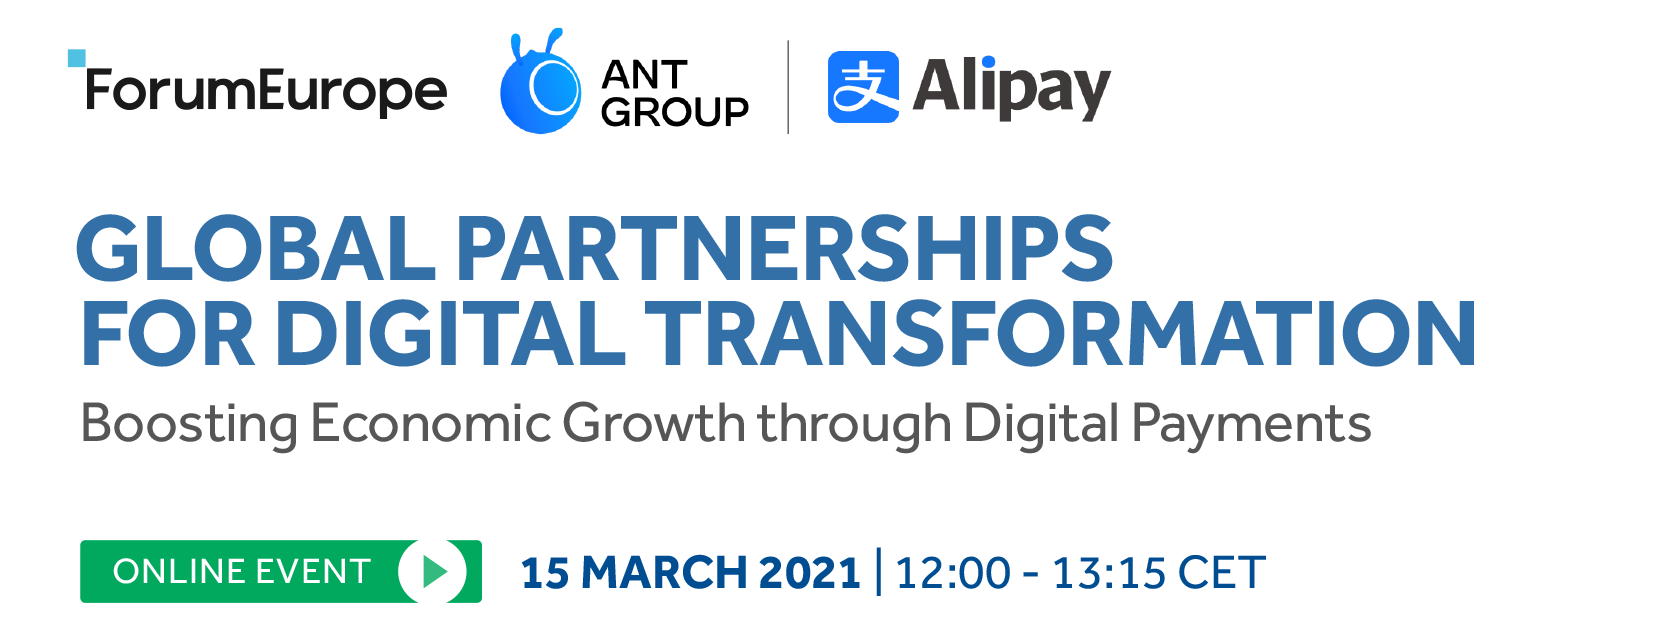 Global Partnerships for Digital Transformation event